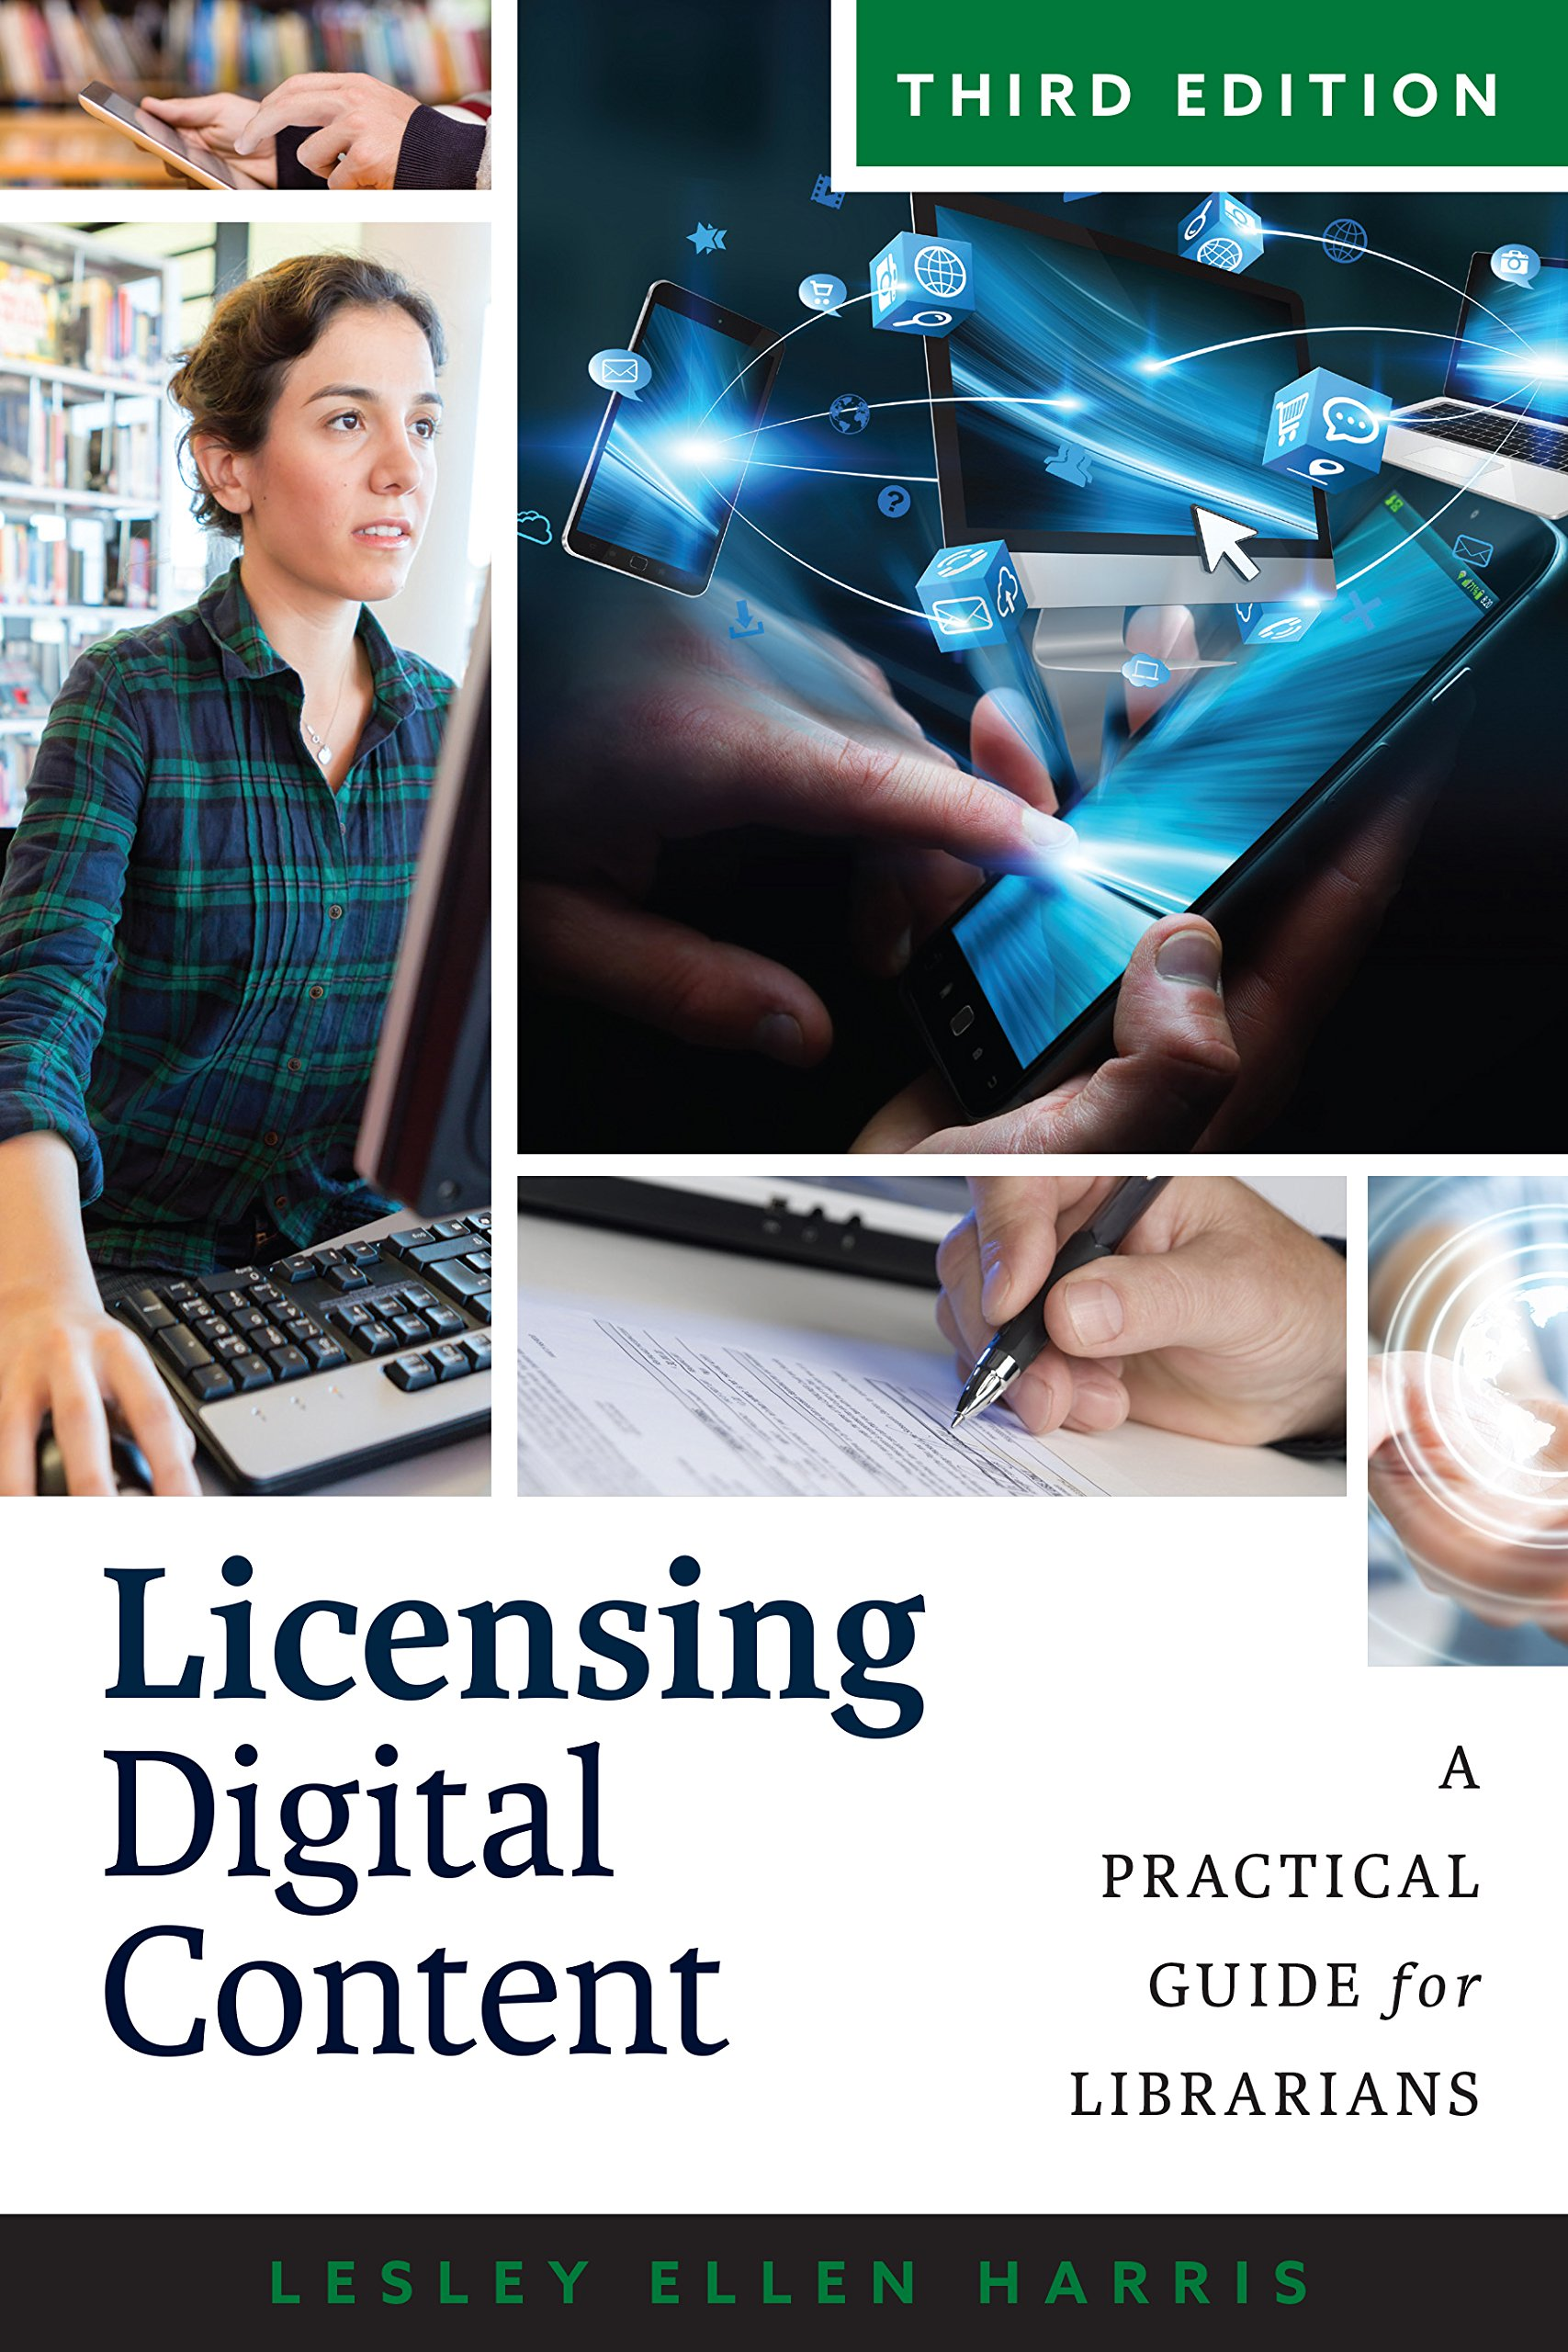 Licensing Digital Content: A Practical Guide for Librarians, Third Edition by American Library Association